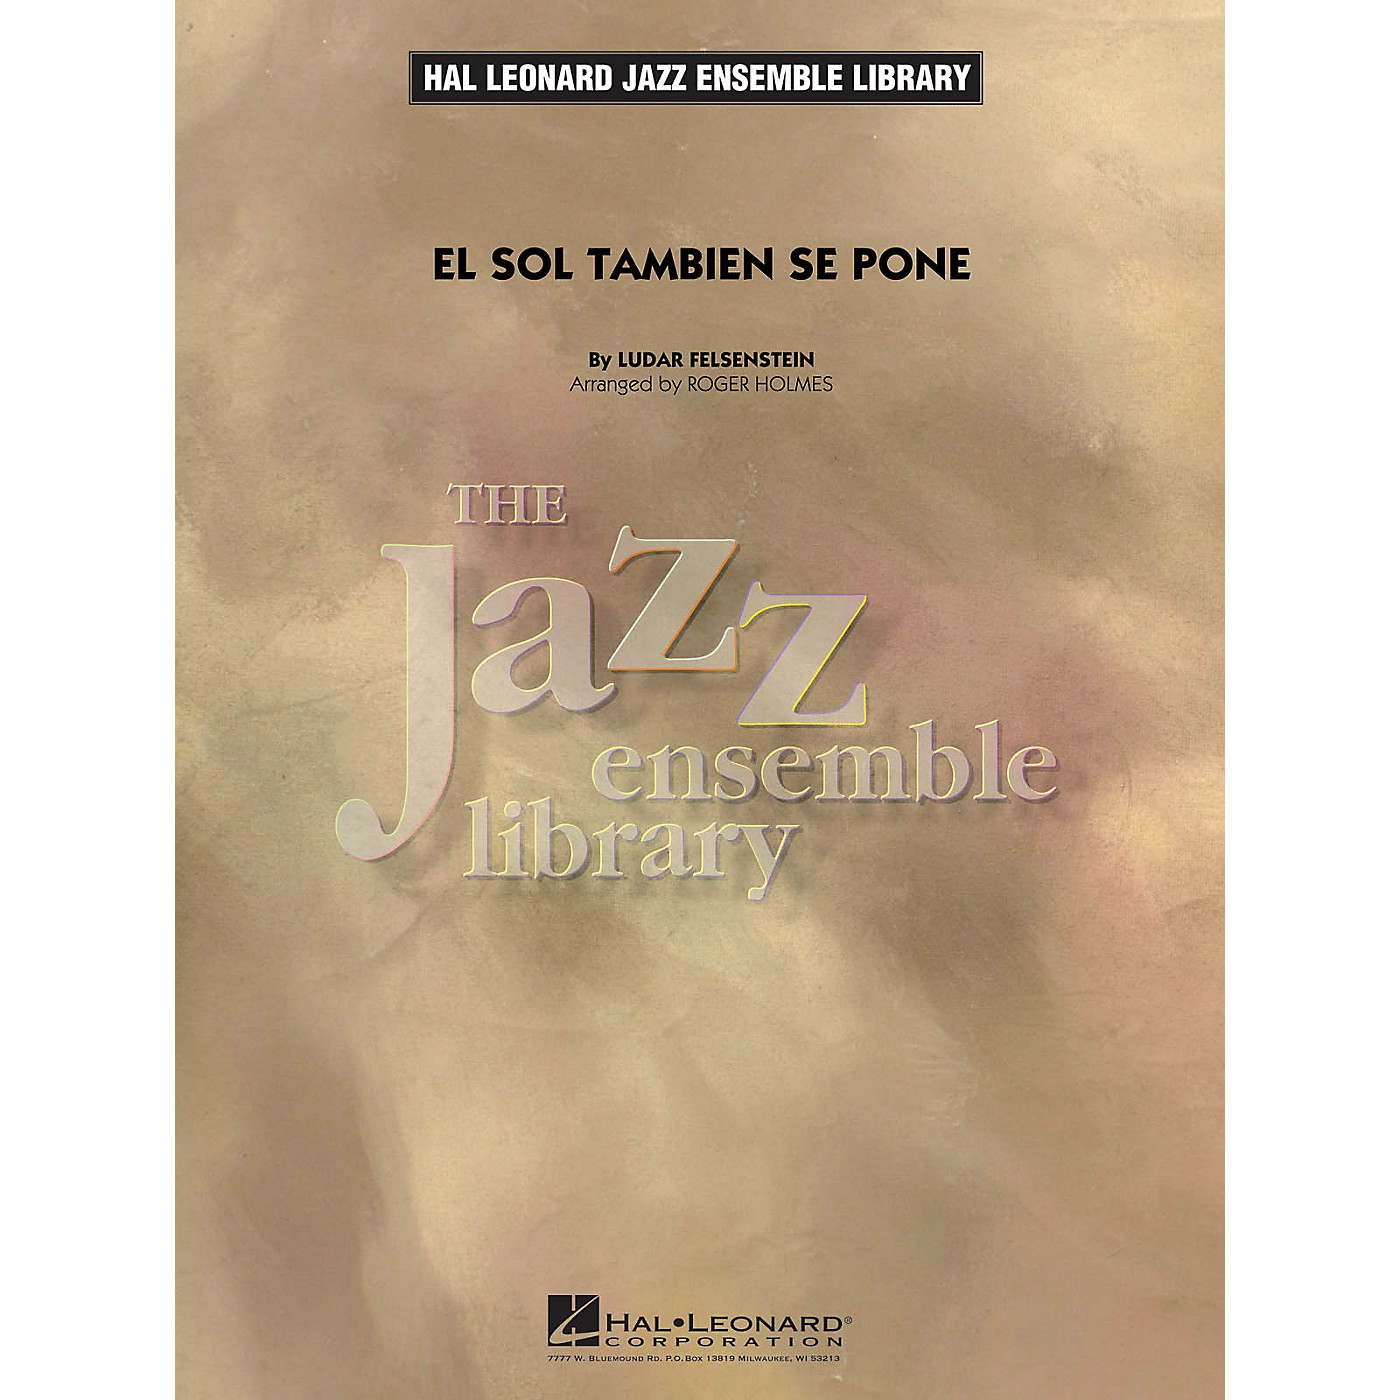 Hal Leonard El Sol Tambien Se Pone Jazz Band Level 4 Arranged by Roger Holmes thumbnail